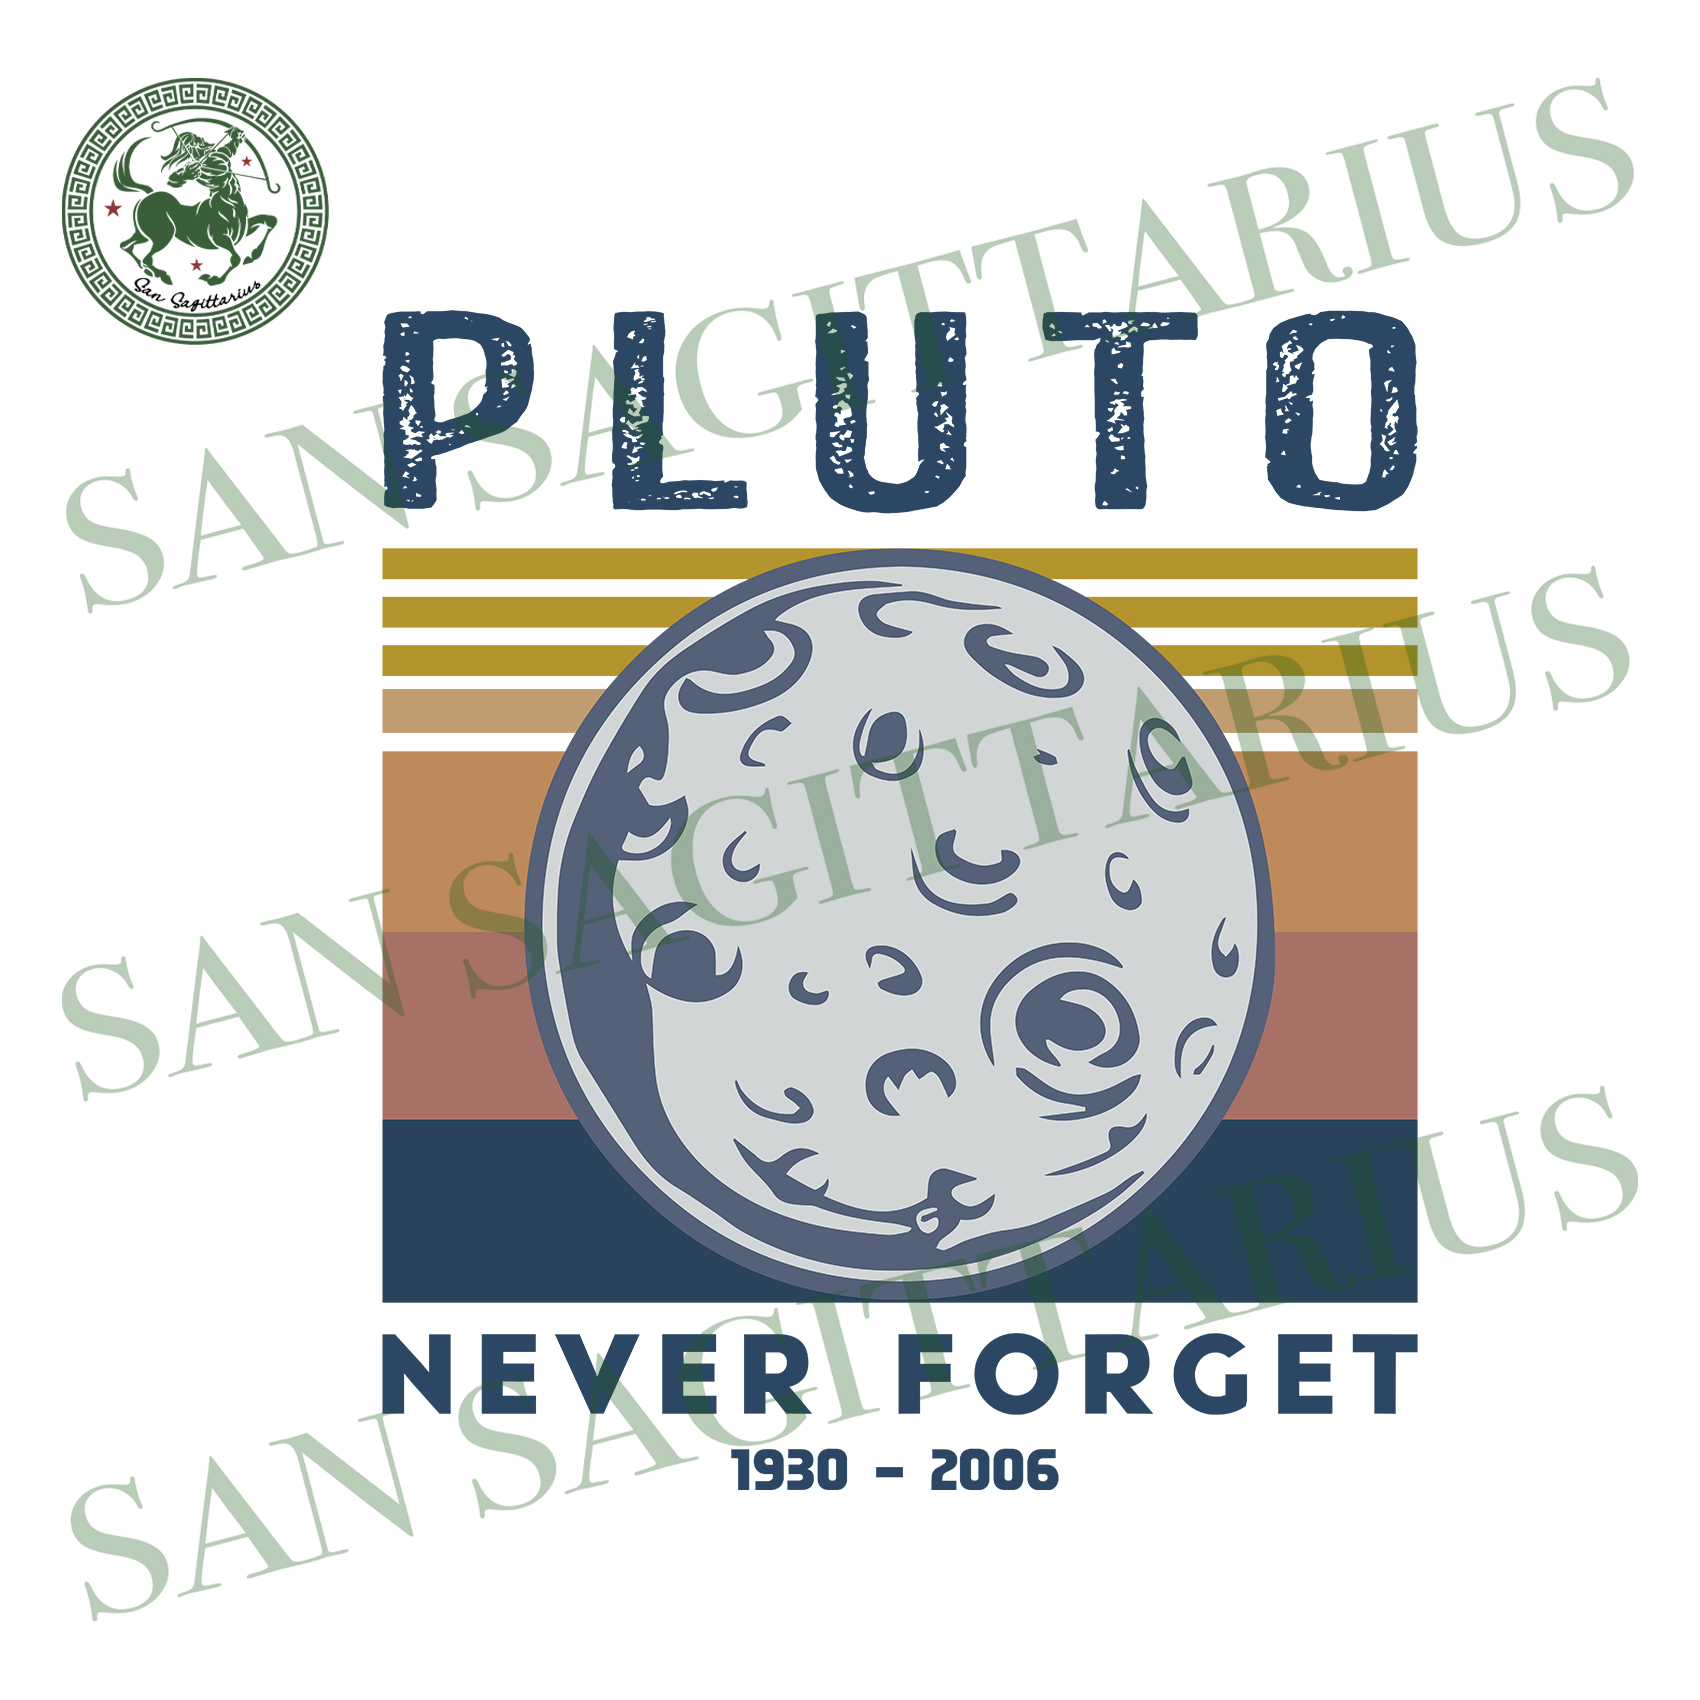 Pluto never forget svg,svg,youth science svg,science shirt svg,pluto planet svg,90s pluto shirt,never forget pluto svg,svg cricut, silhouette svg files, cricut svg, silhouette svg, svg design